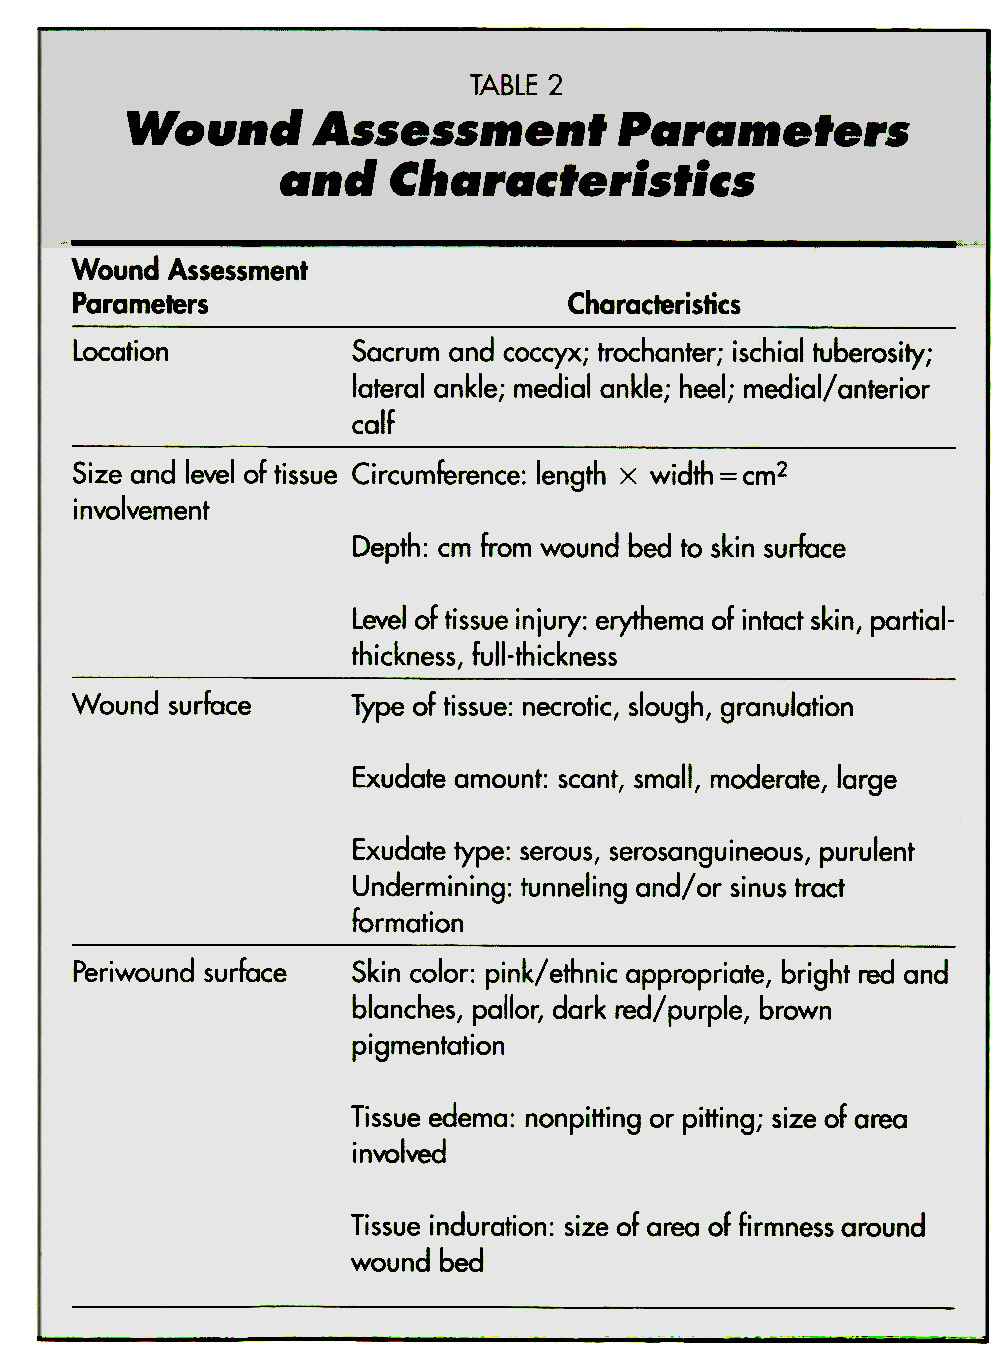 TABLE 2Wound Assessment Parameters and Characteristics